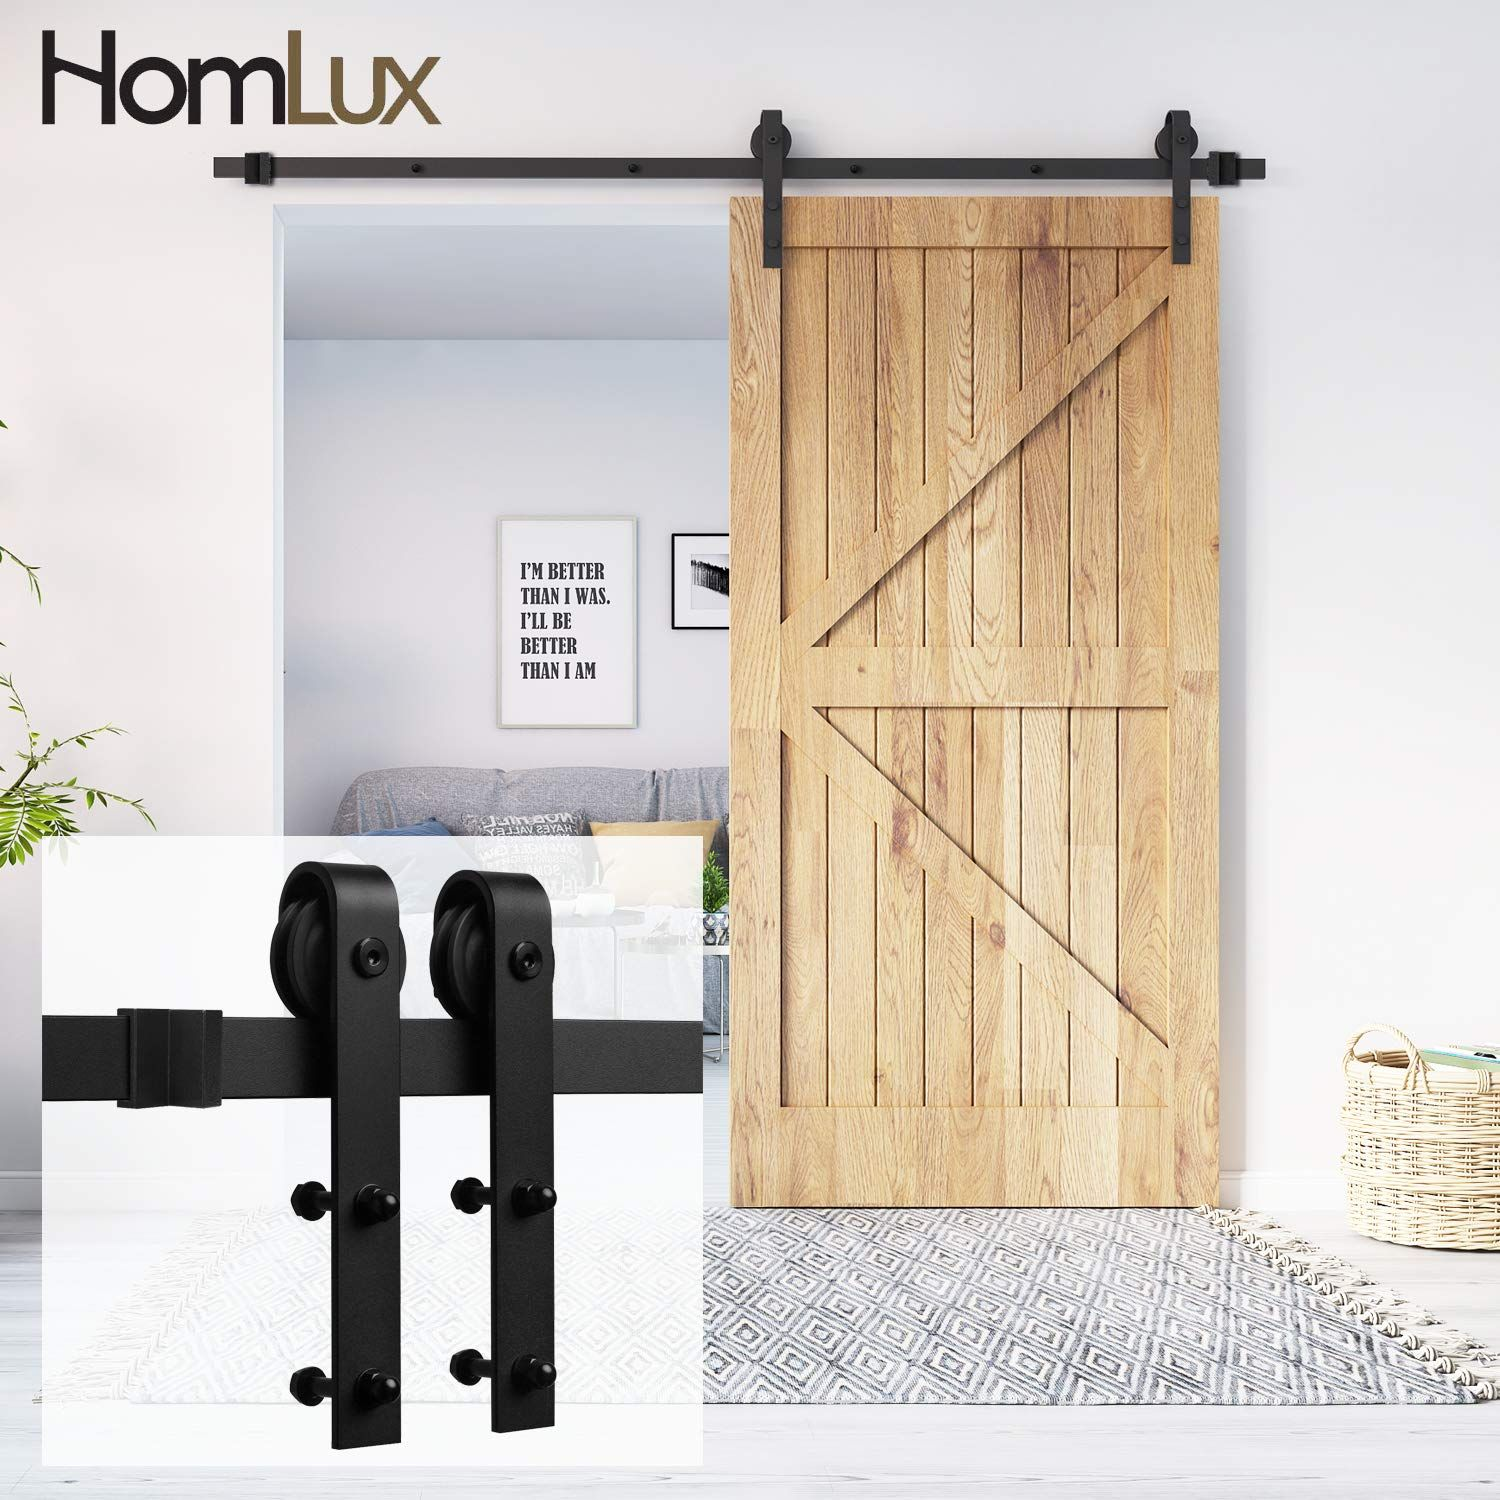 Homlux 6ft Heavy Duty Sturdy Sliding Barn Door Hardware Kit One Door Smoothly And Quietly Simple A Barn Door Kit Sliding Barn Door Track Barn Doors Sliding